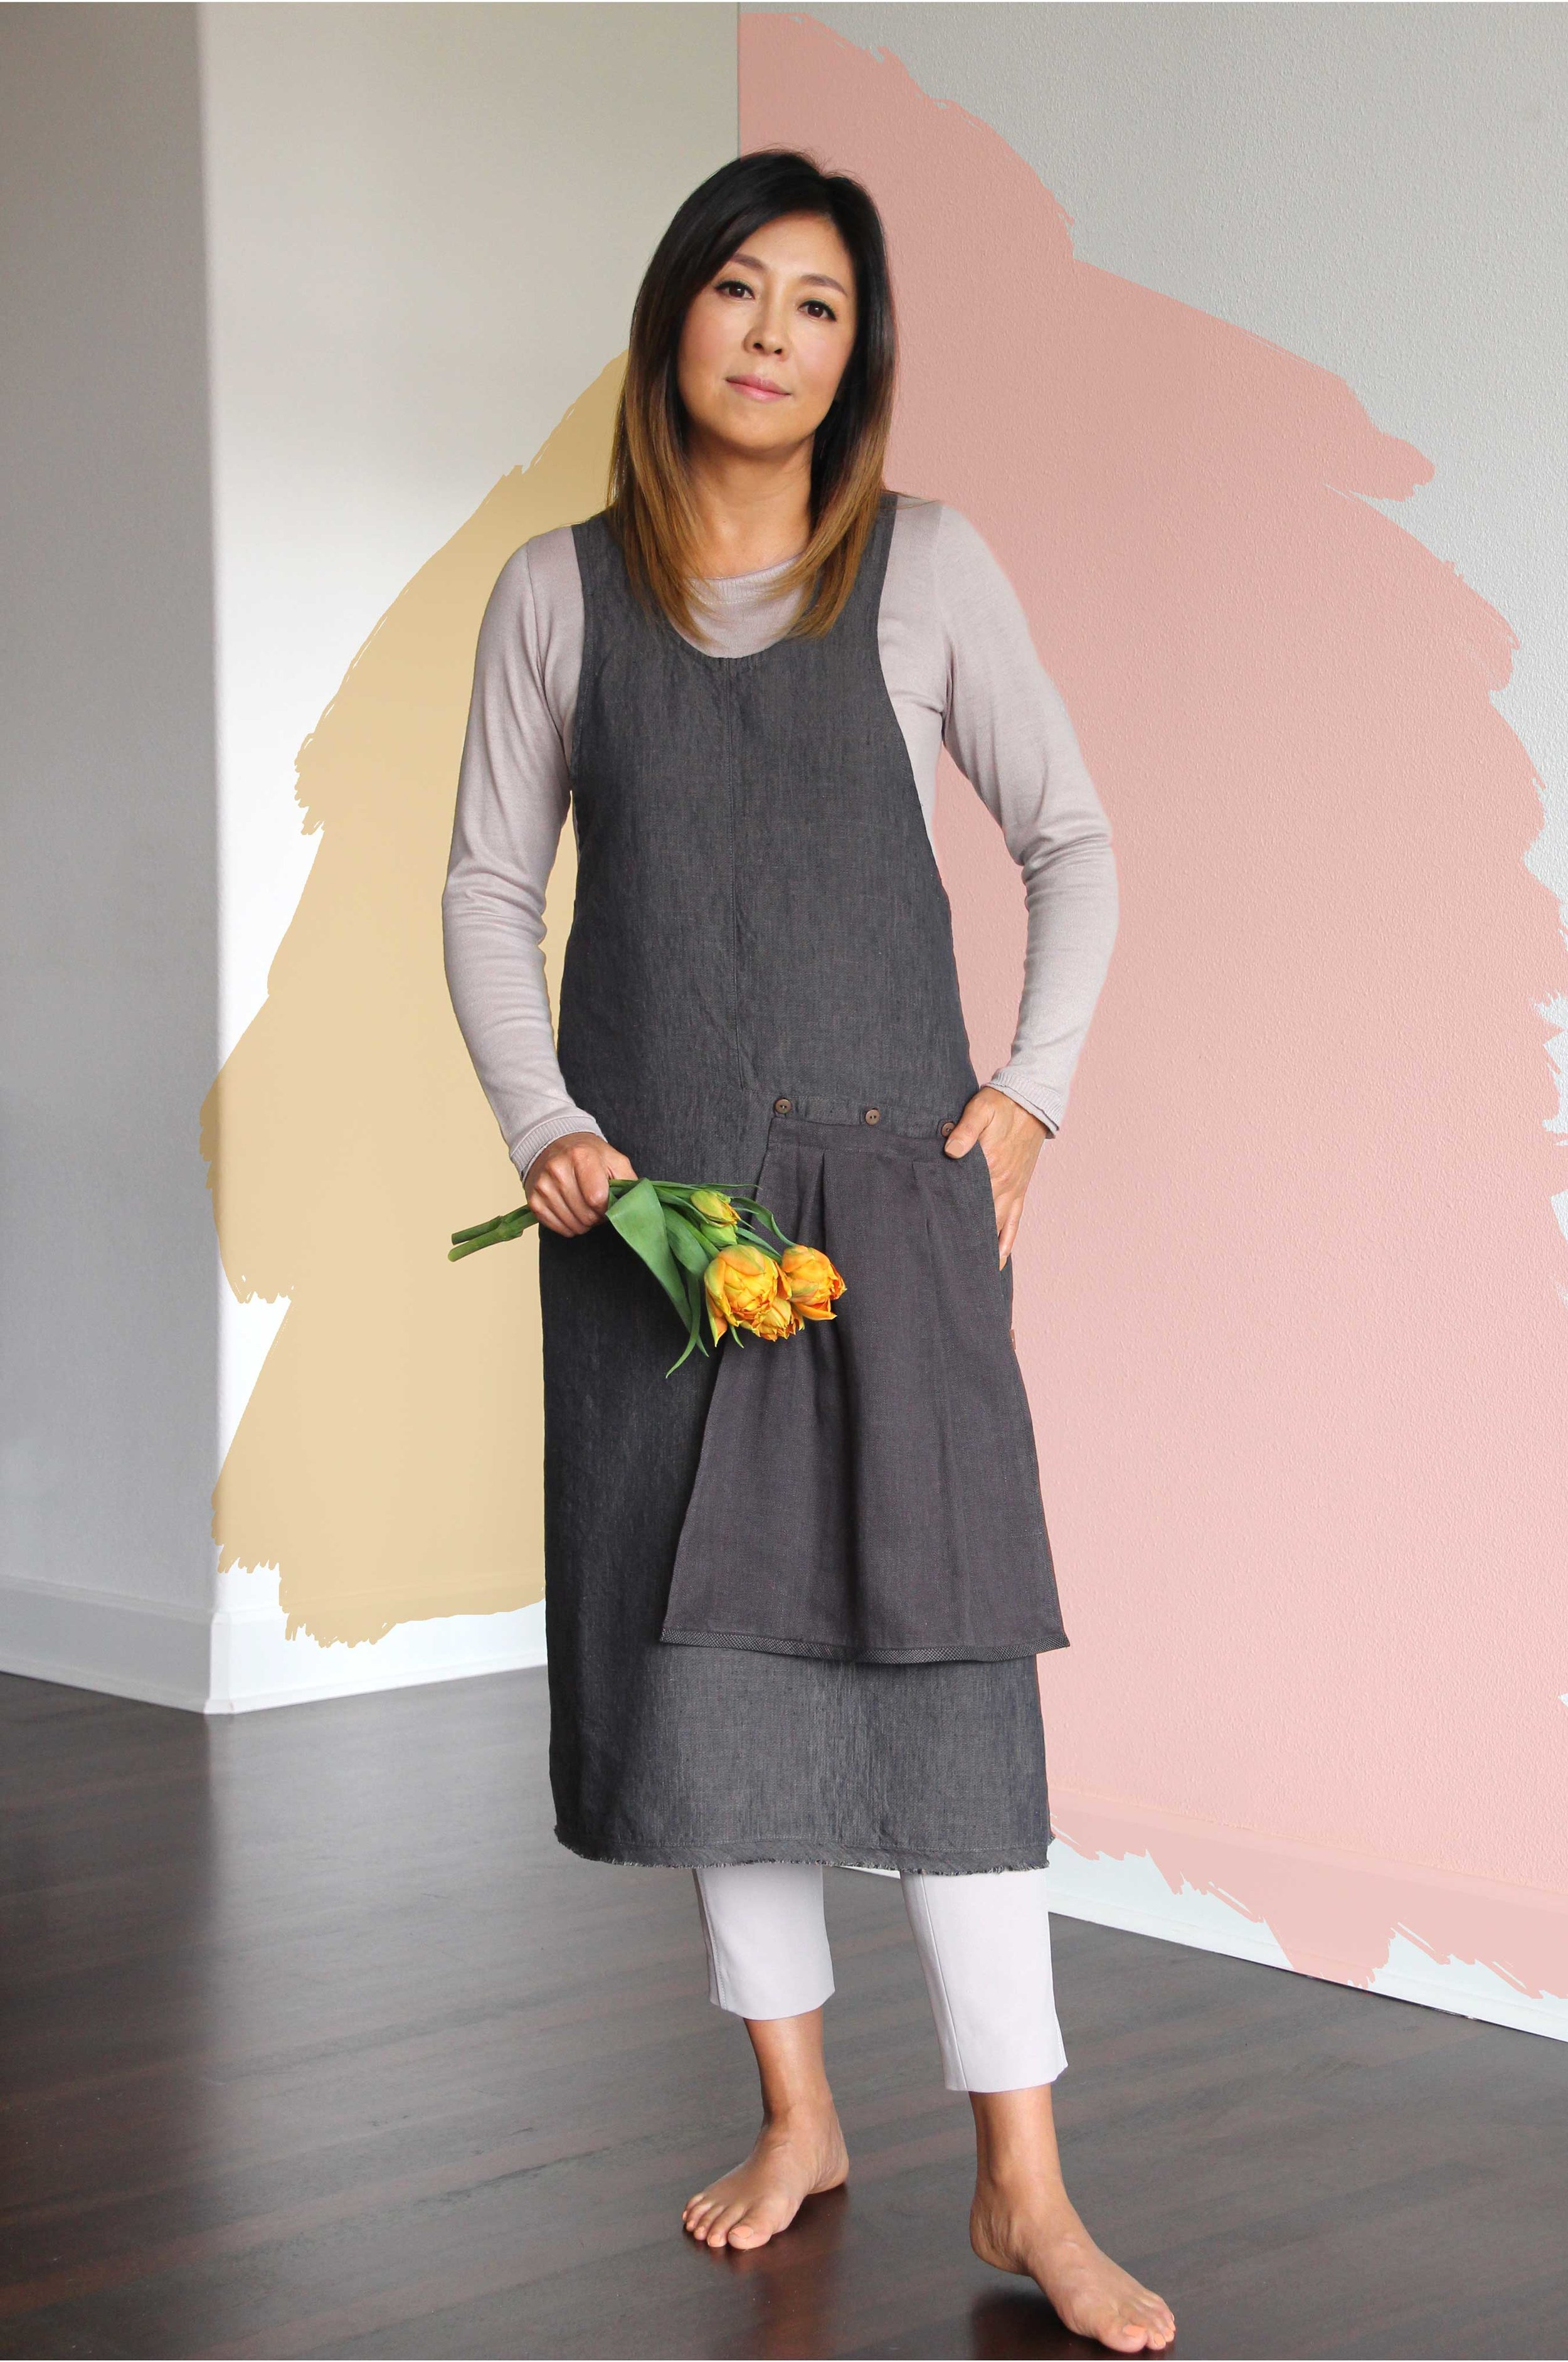 The Grace Apron $148